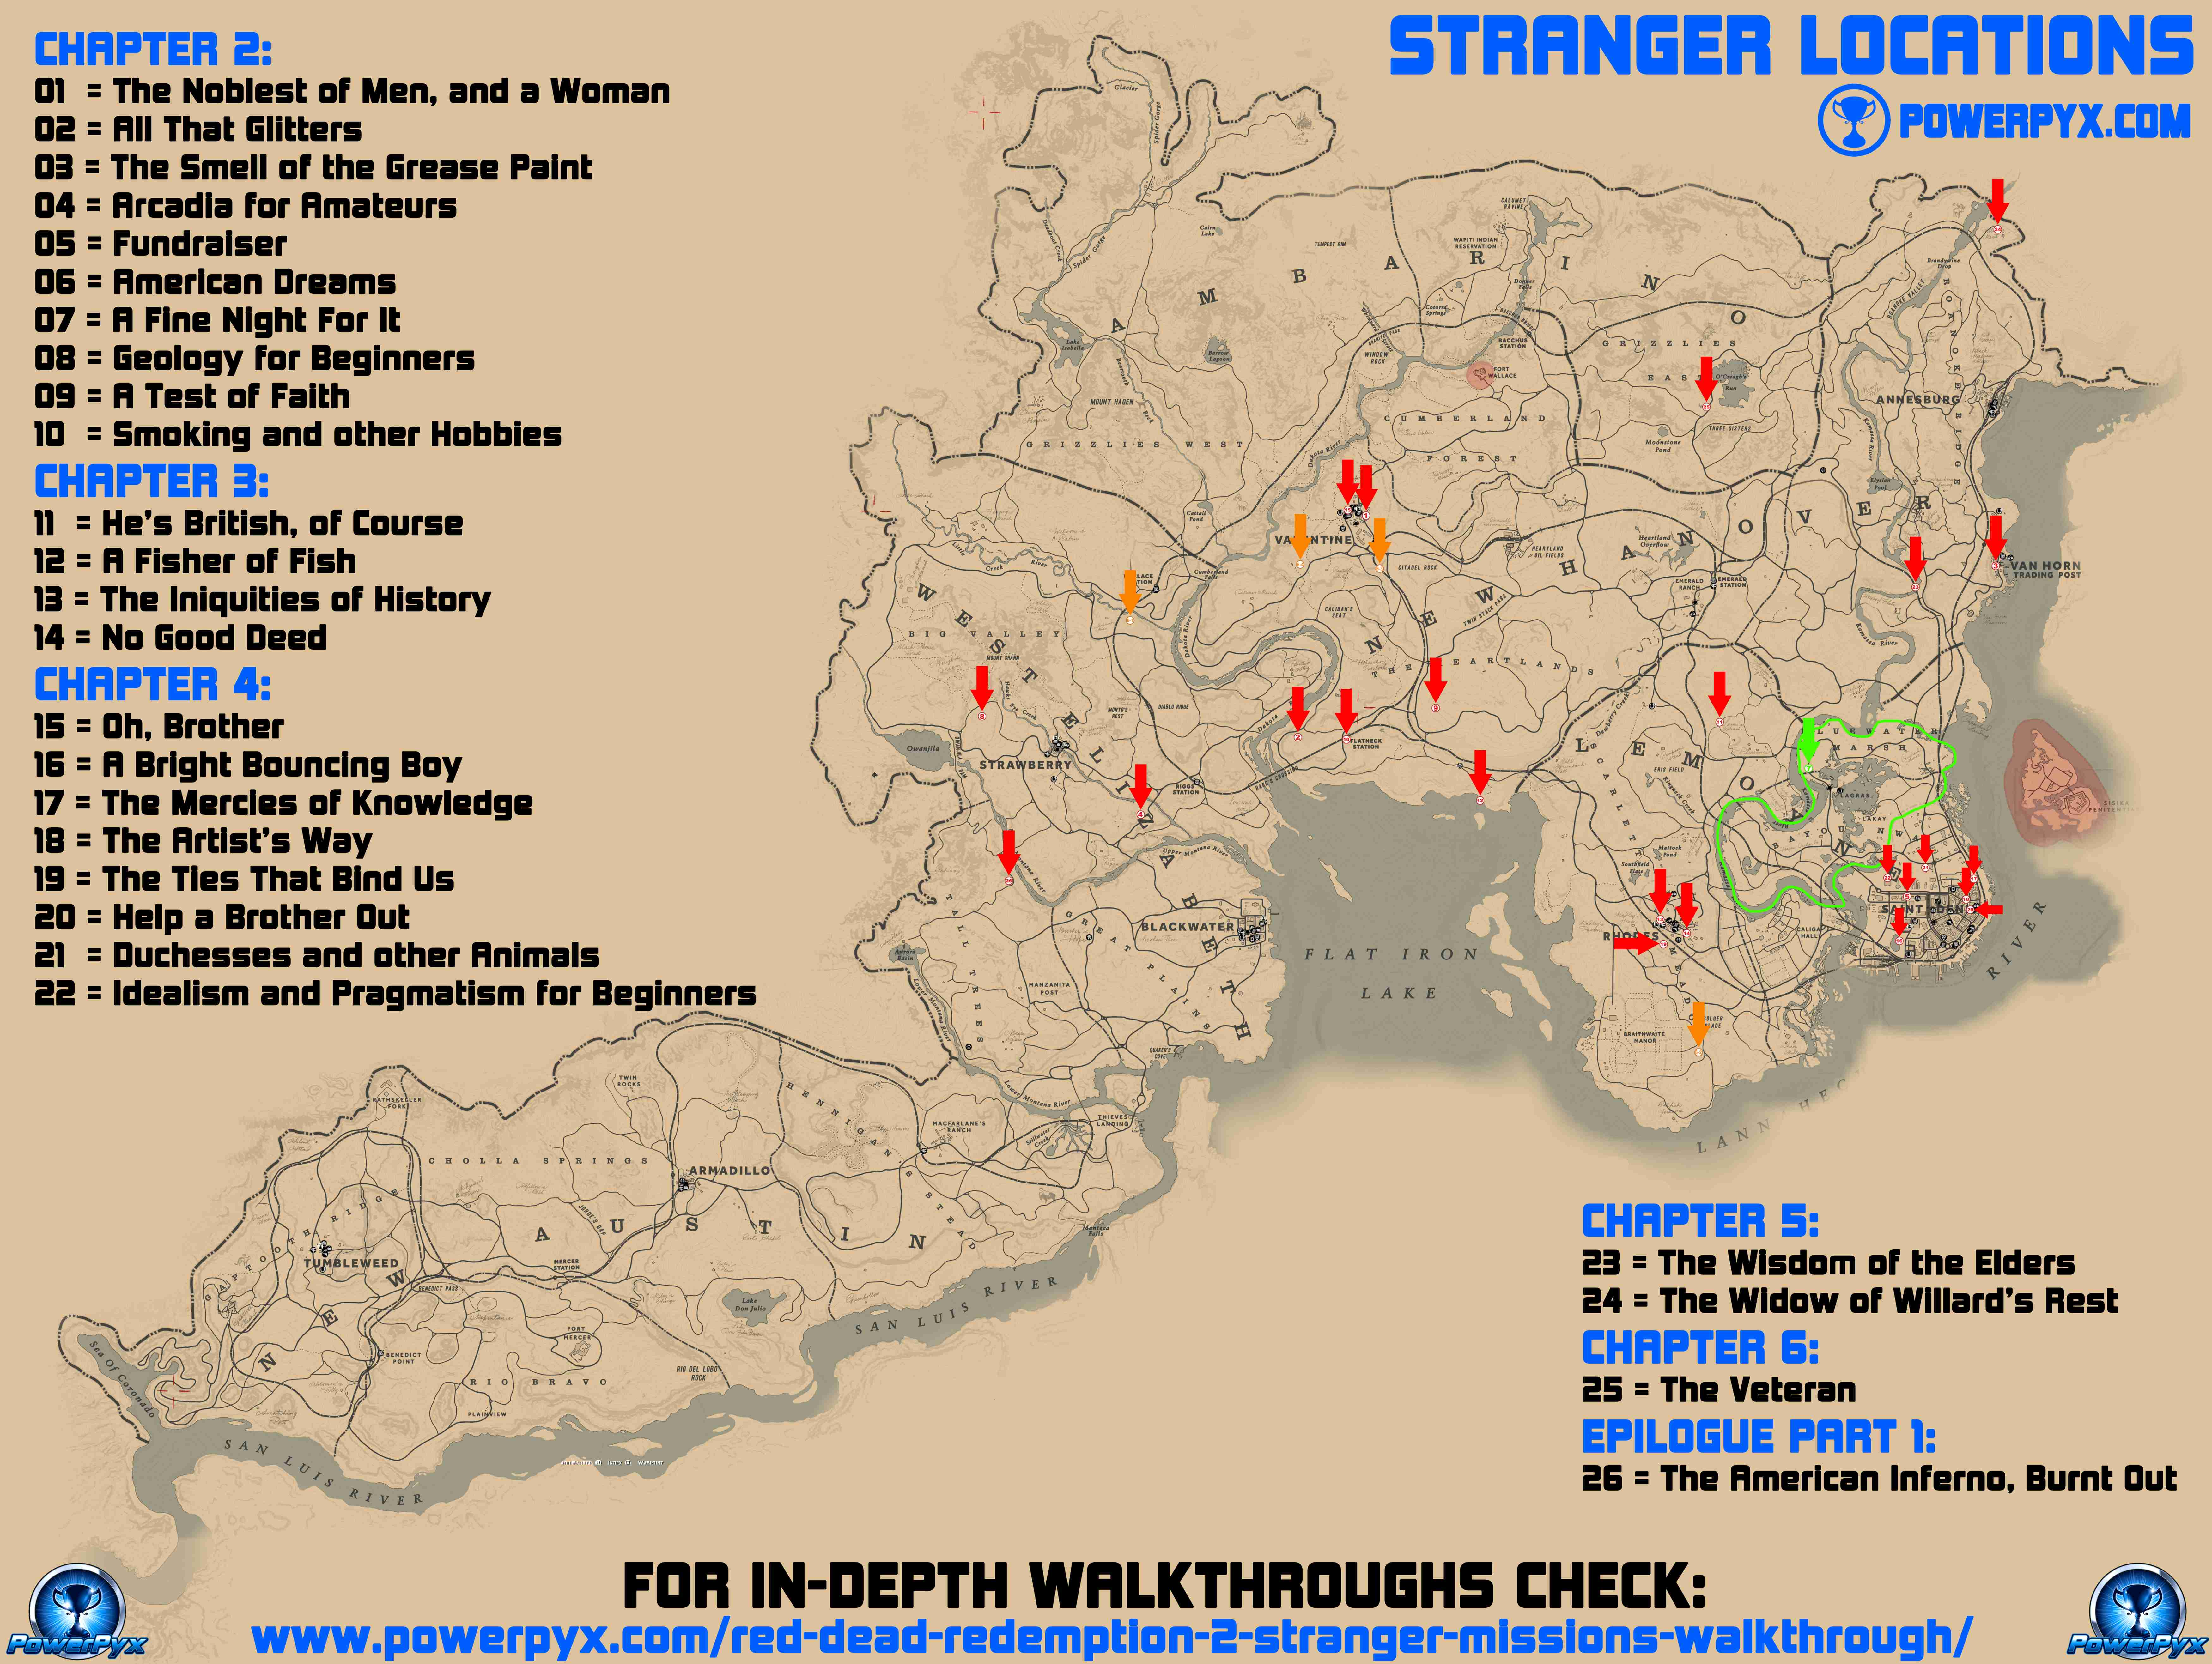 Red Dead Redemption 2 All Stranger Locations Map